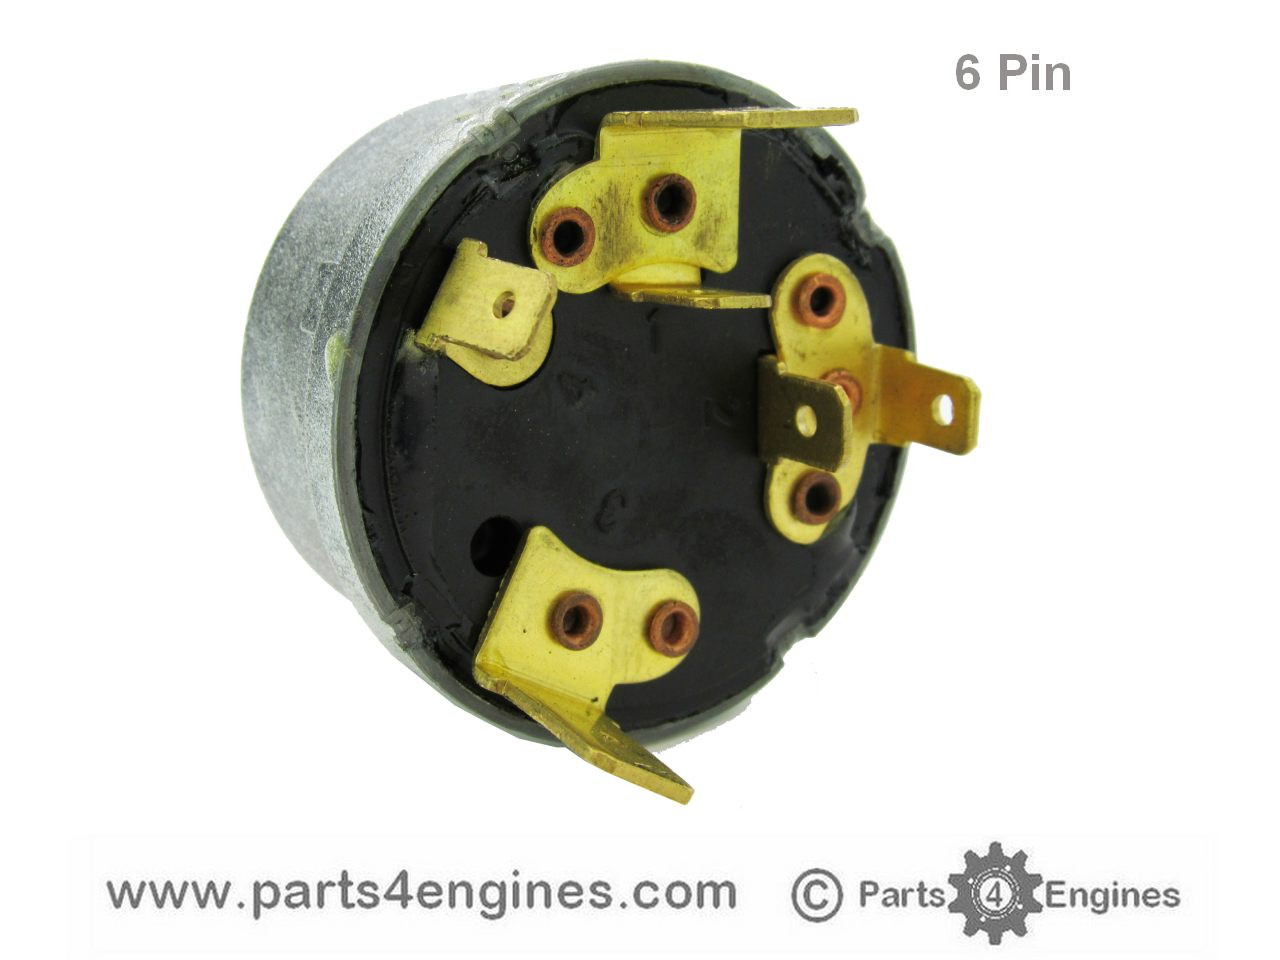 6 pin switch - Perkins M90 Ignition switch from parts4engines.com